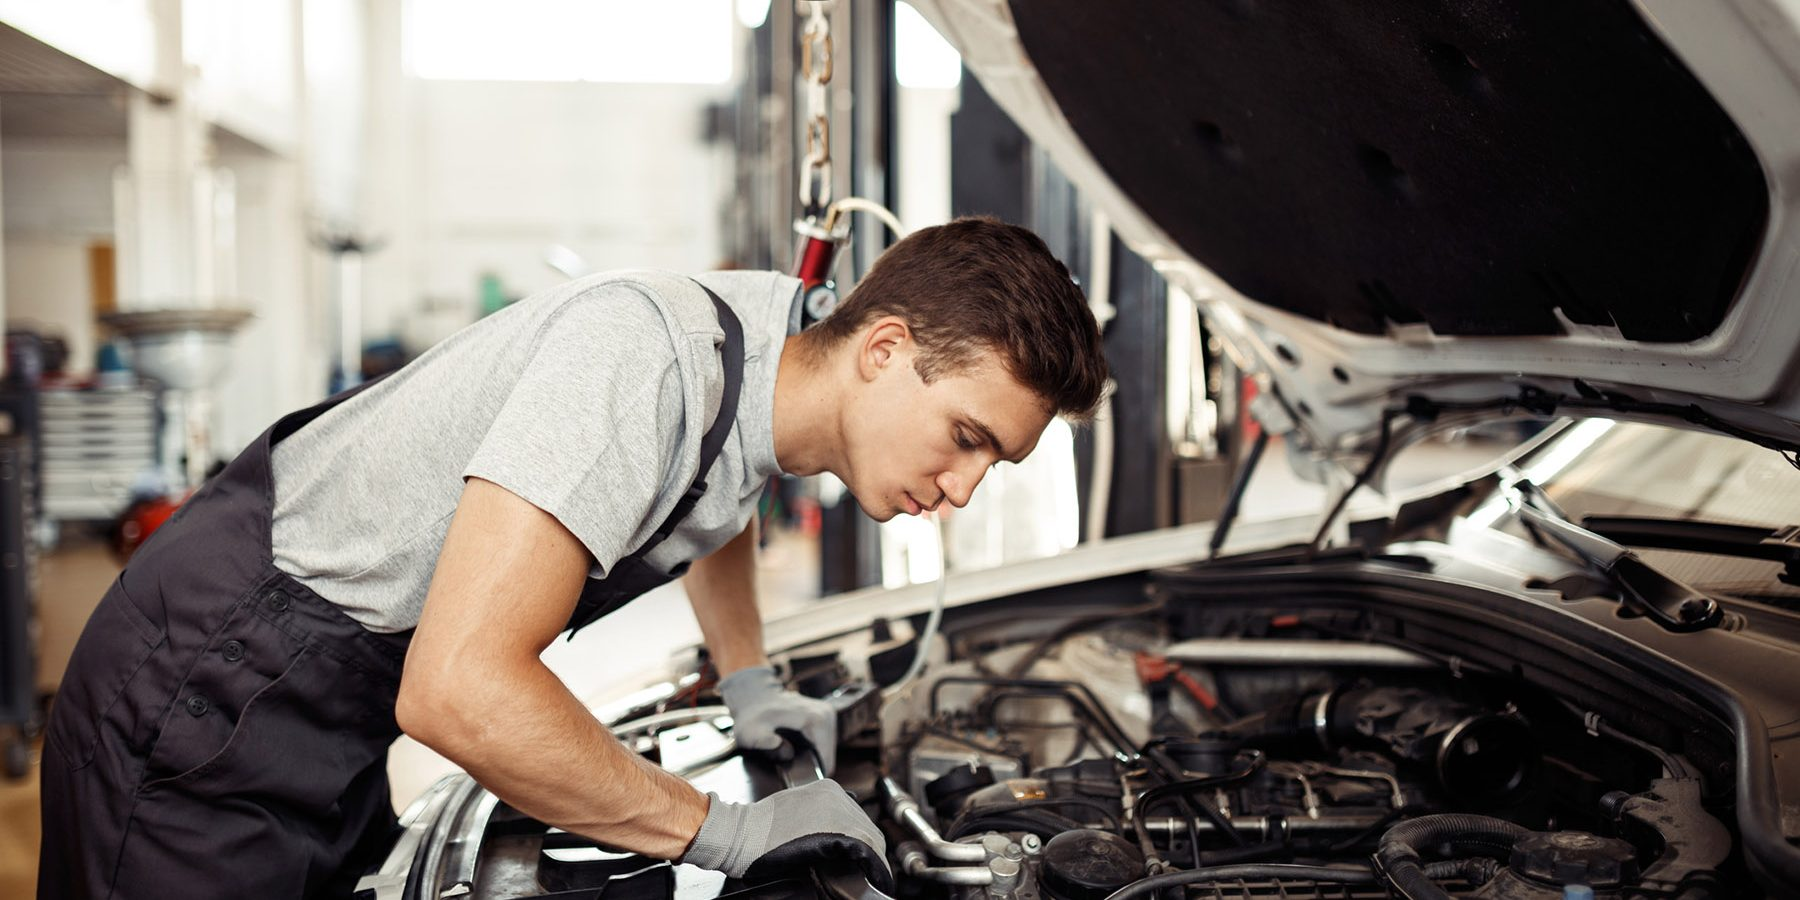 Mechanic Langport | Technician checking engine of car. Auto mechanic checking car engine. Maintenance checking car.